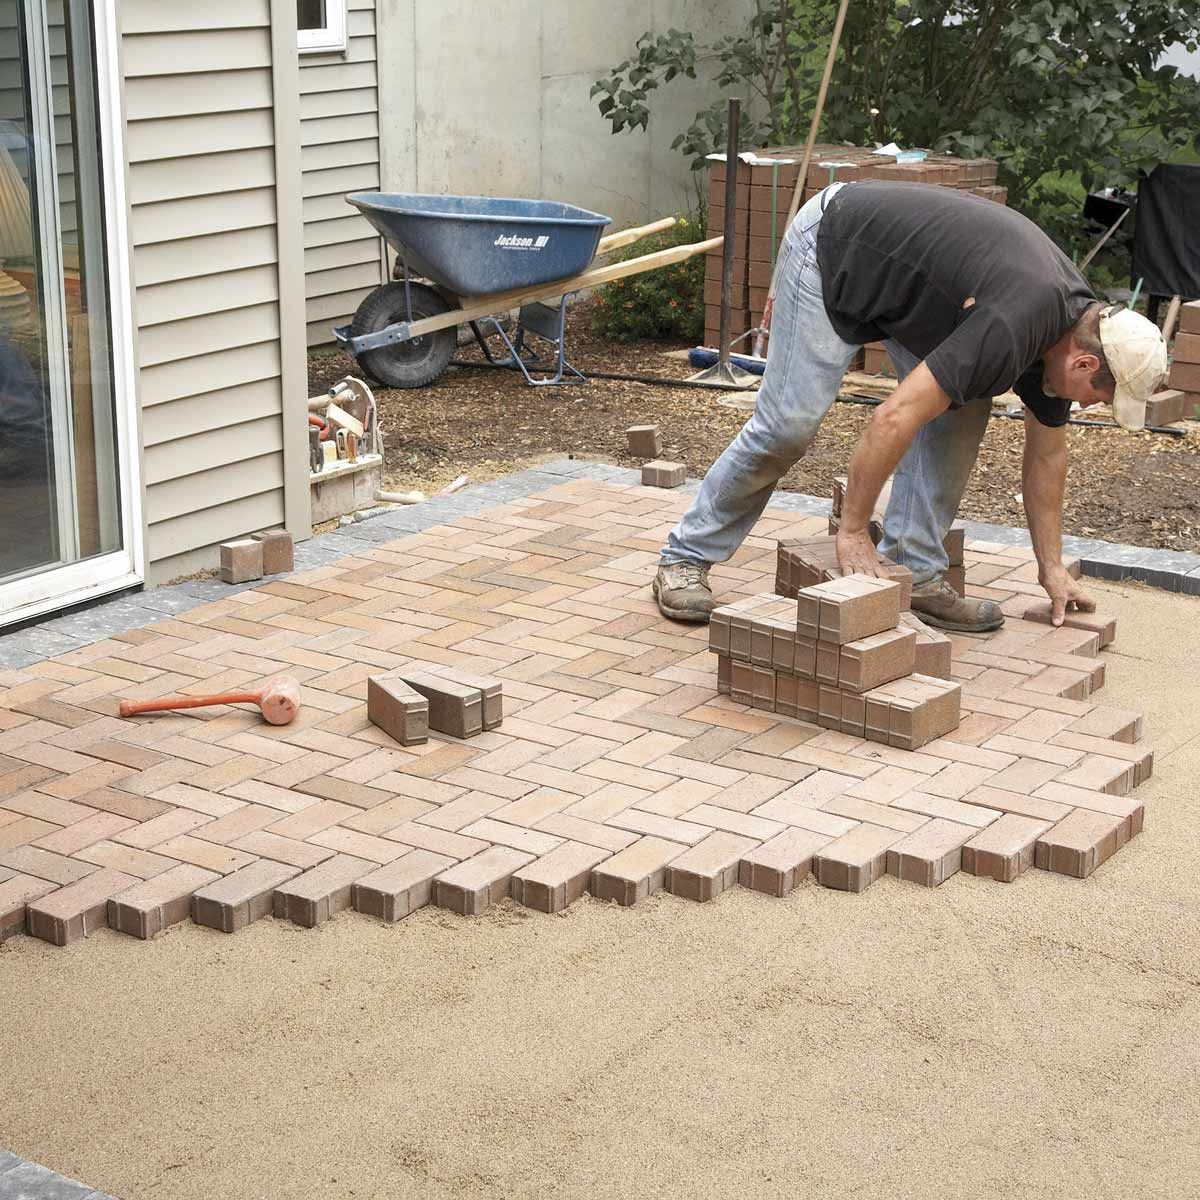 How To Cover A Concrete Patio With Pavers Concrete Patio Pavers Over Concrete Brick Decor